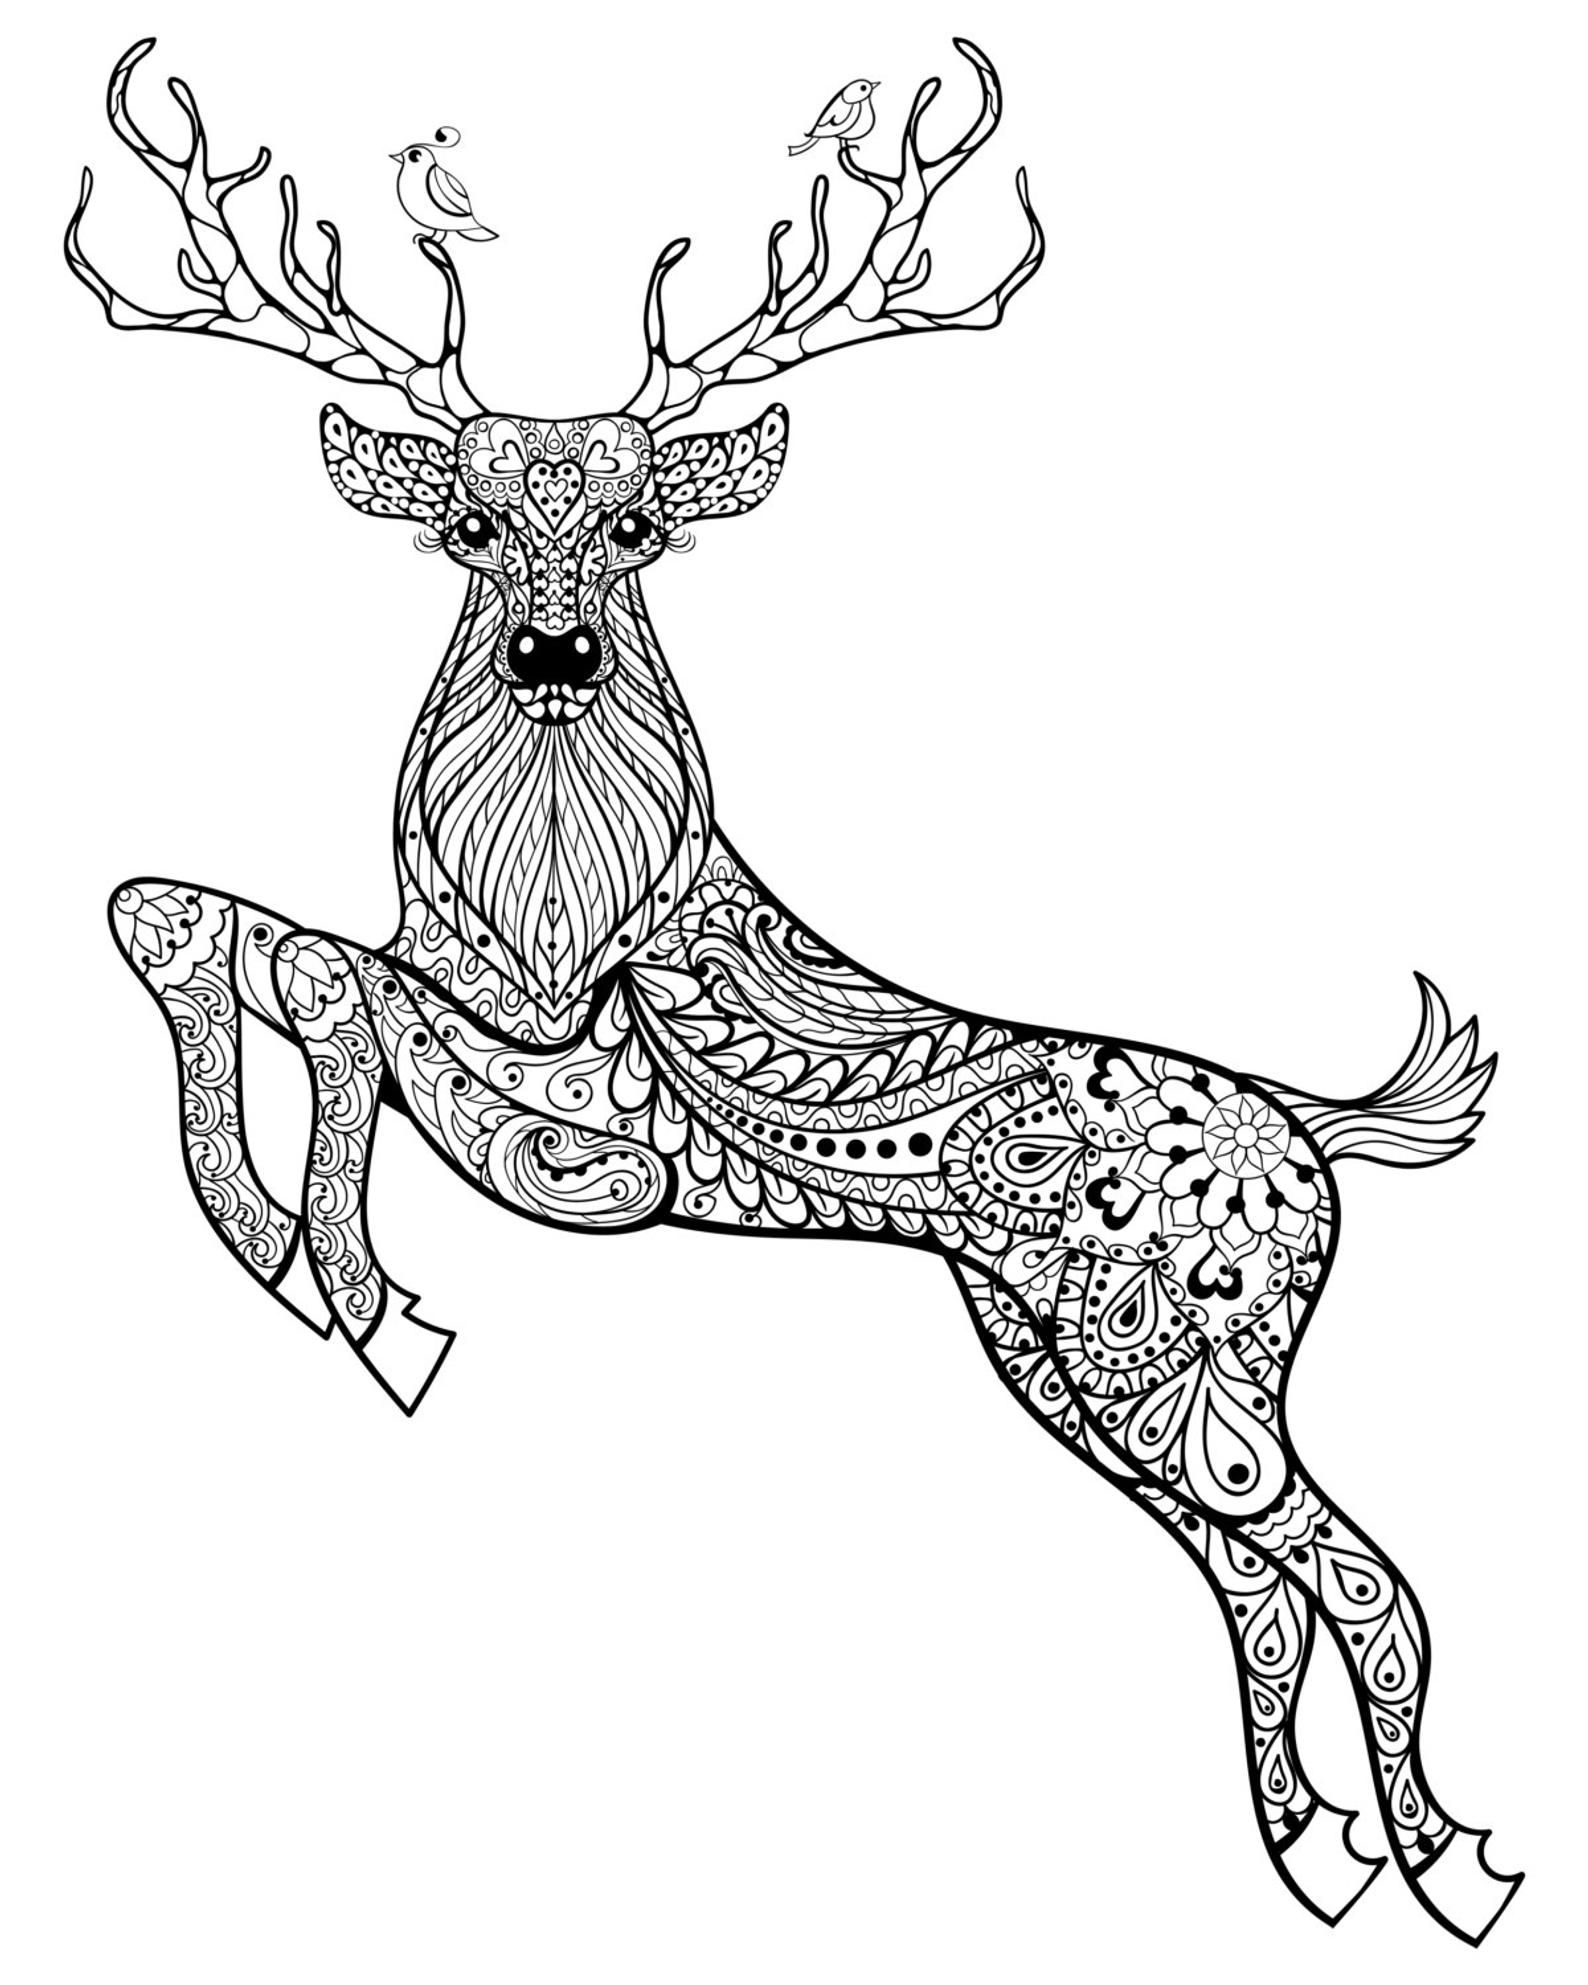 Color Me Now Download And Color Ebook Coloring Book Winter Theme Coloring Pages Creative Use For Family Teachers Therapist Students Deer Coloring Pages Animal Coloring Pages Christmas Coloring Pages